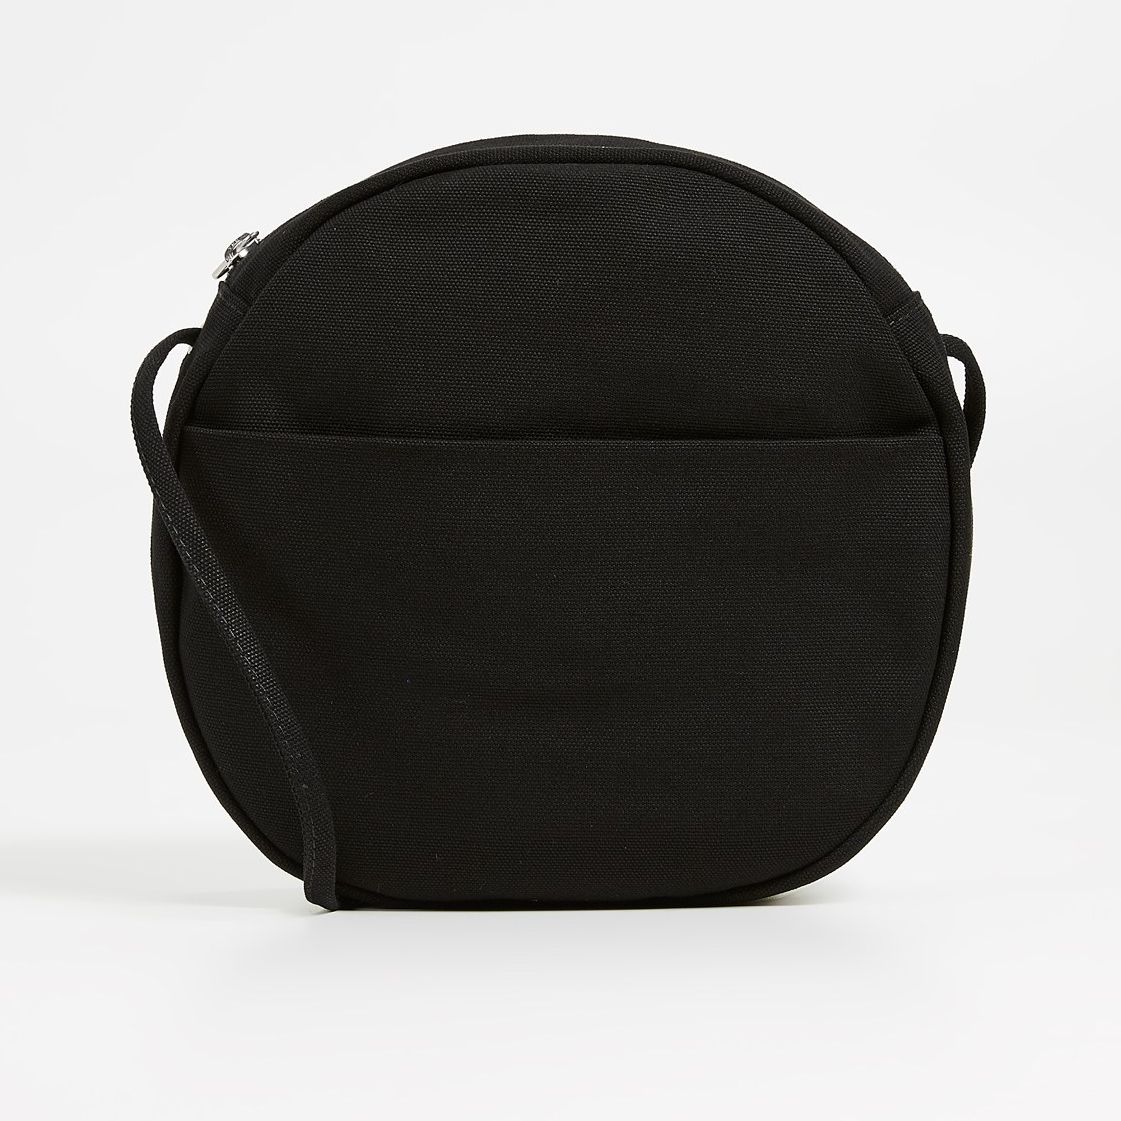 Baggu Circle Bag | Best Round Bags for Spring 2019 | CoffeeAndHandbags.com